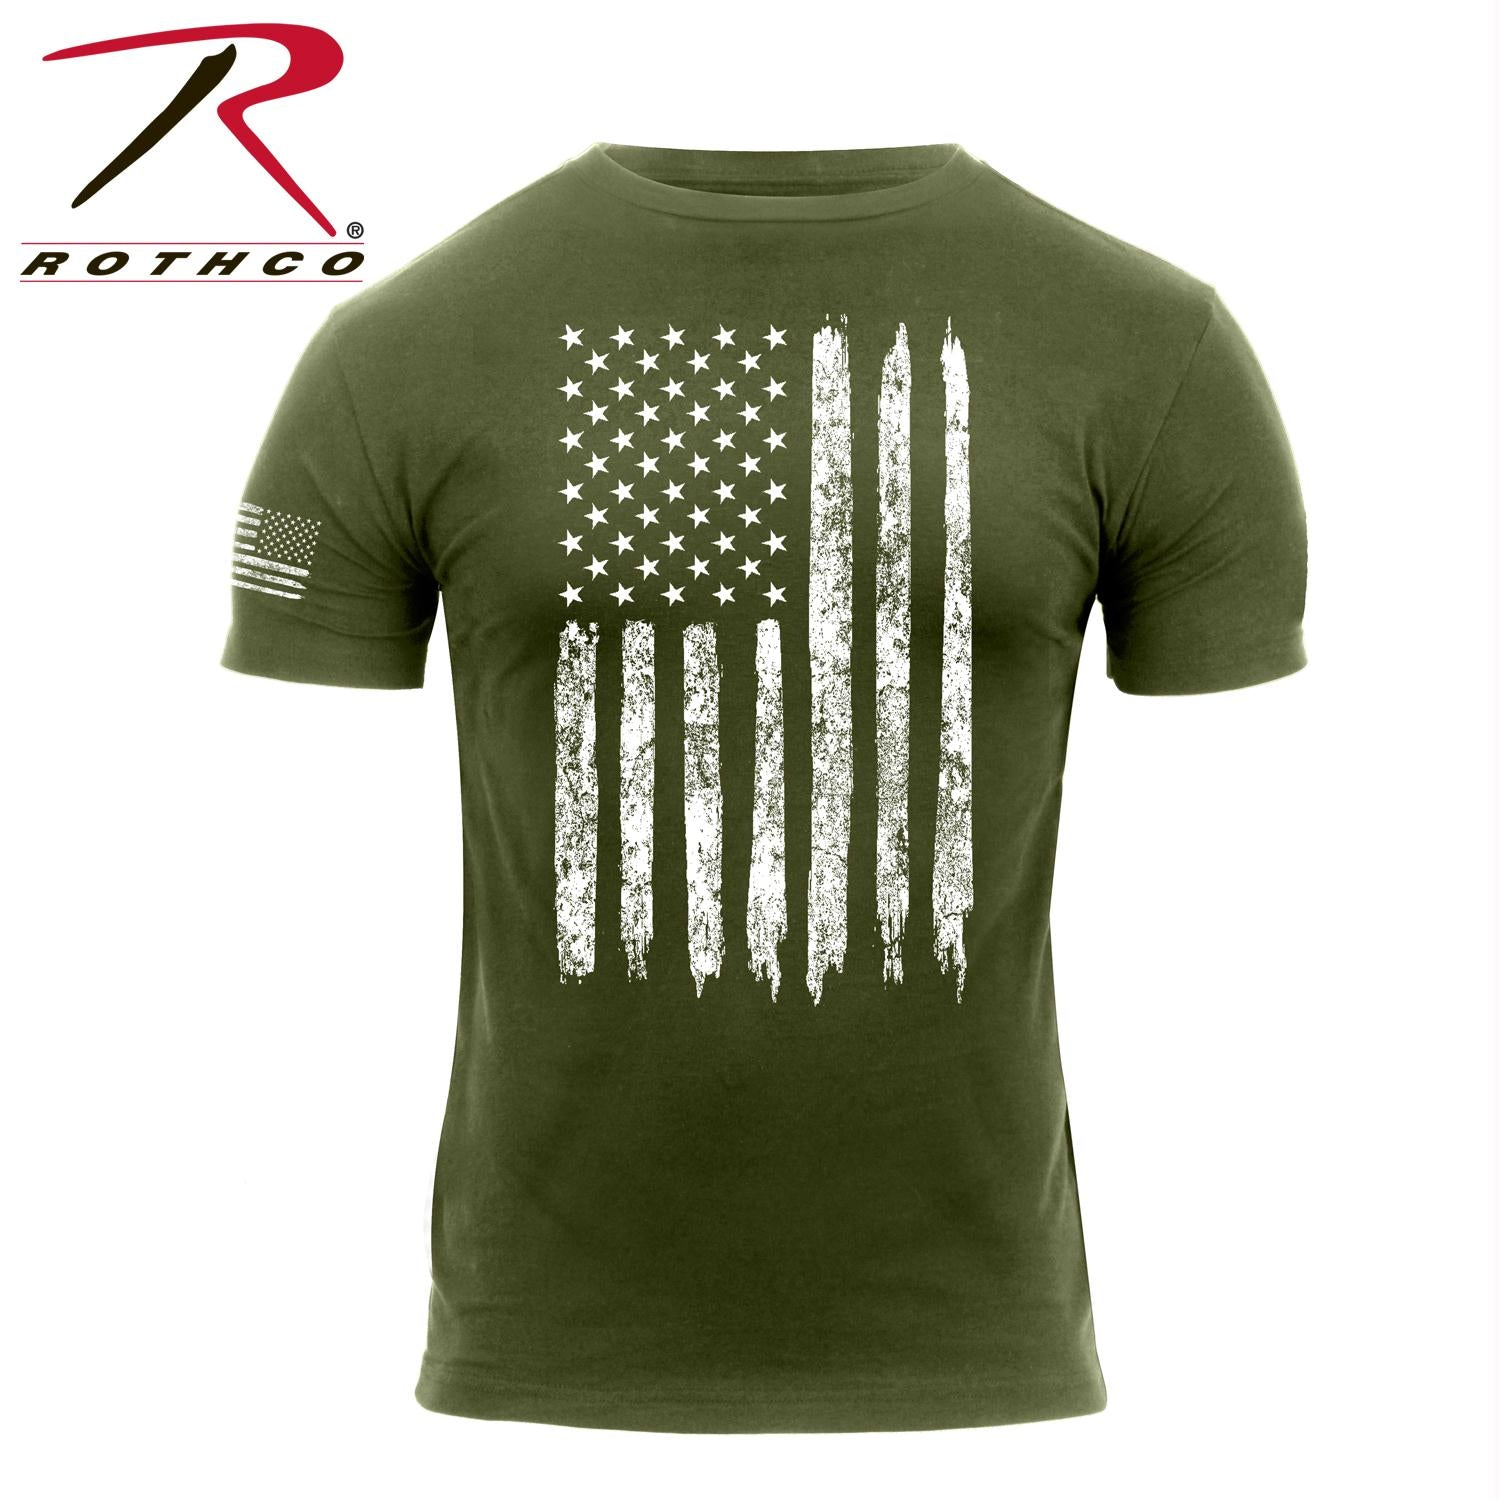 Rothco Distressed US Flag T-Shirt - Olive Drab / L